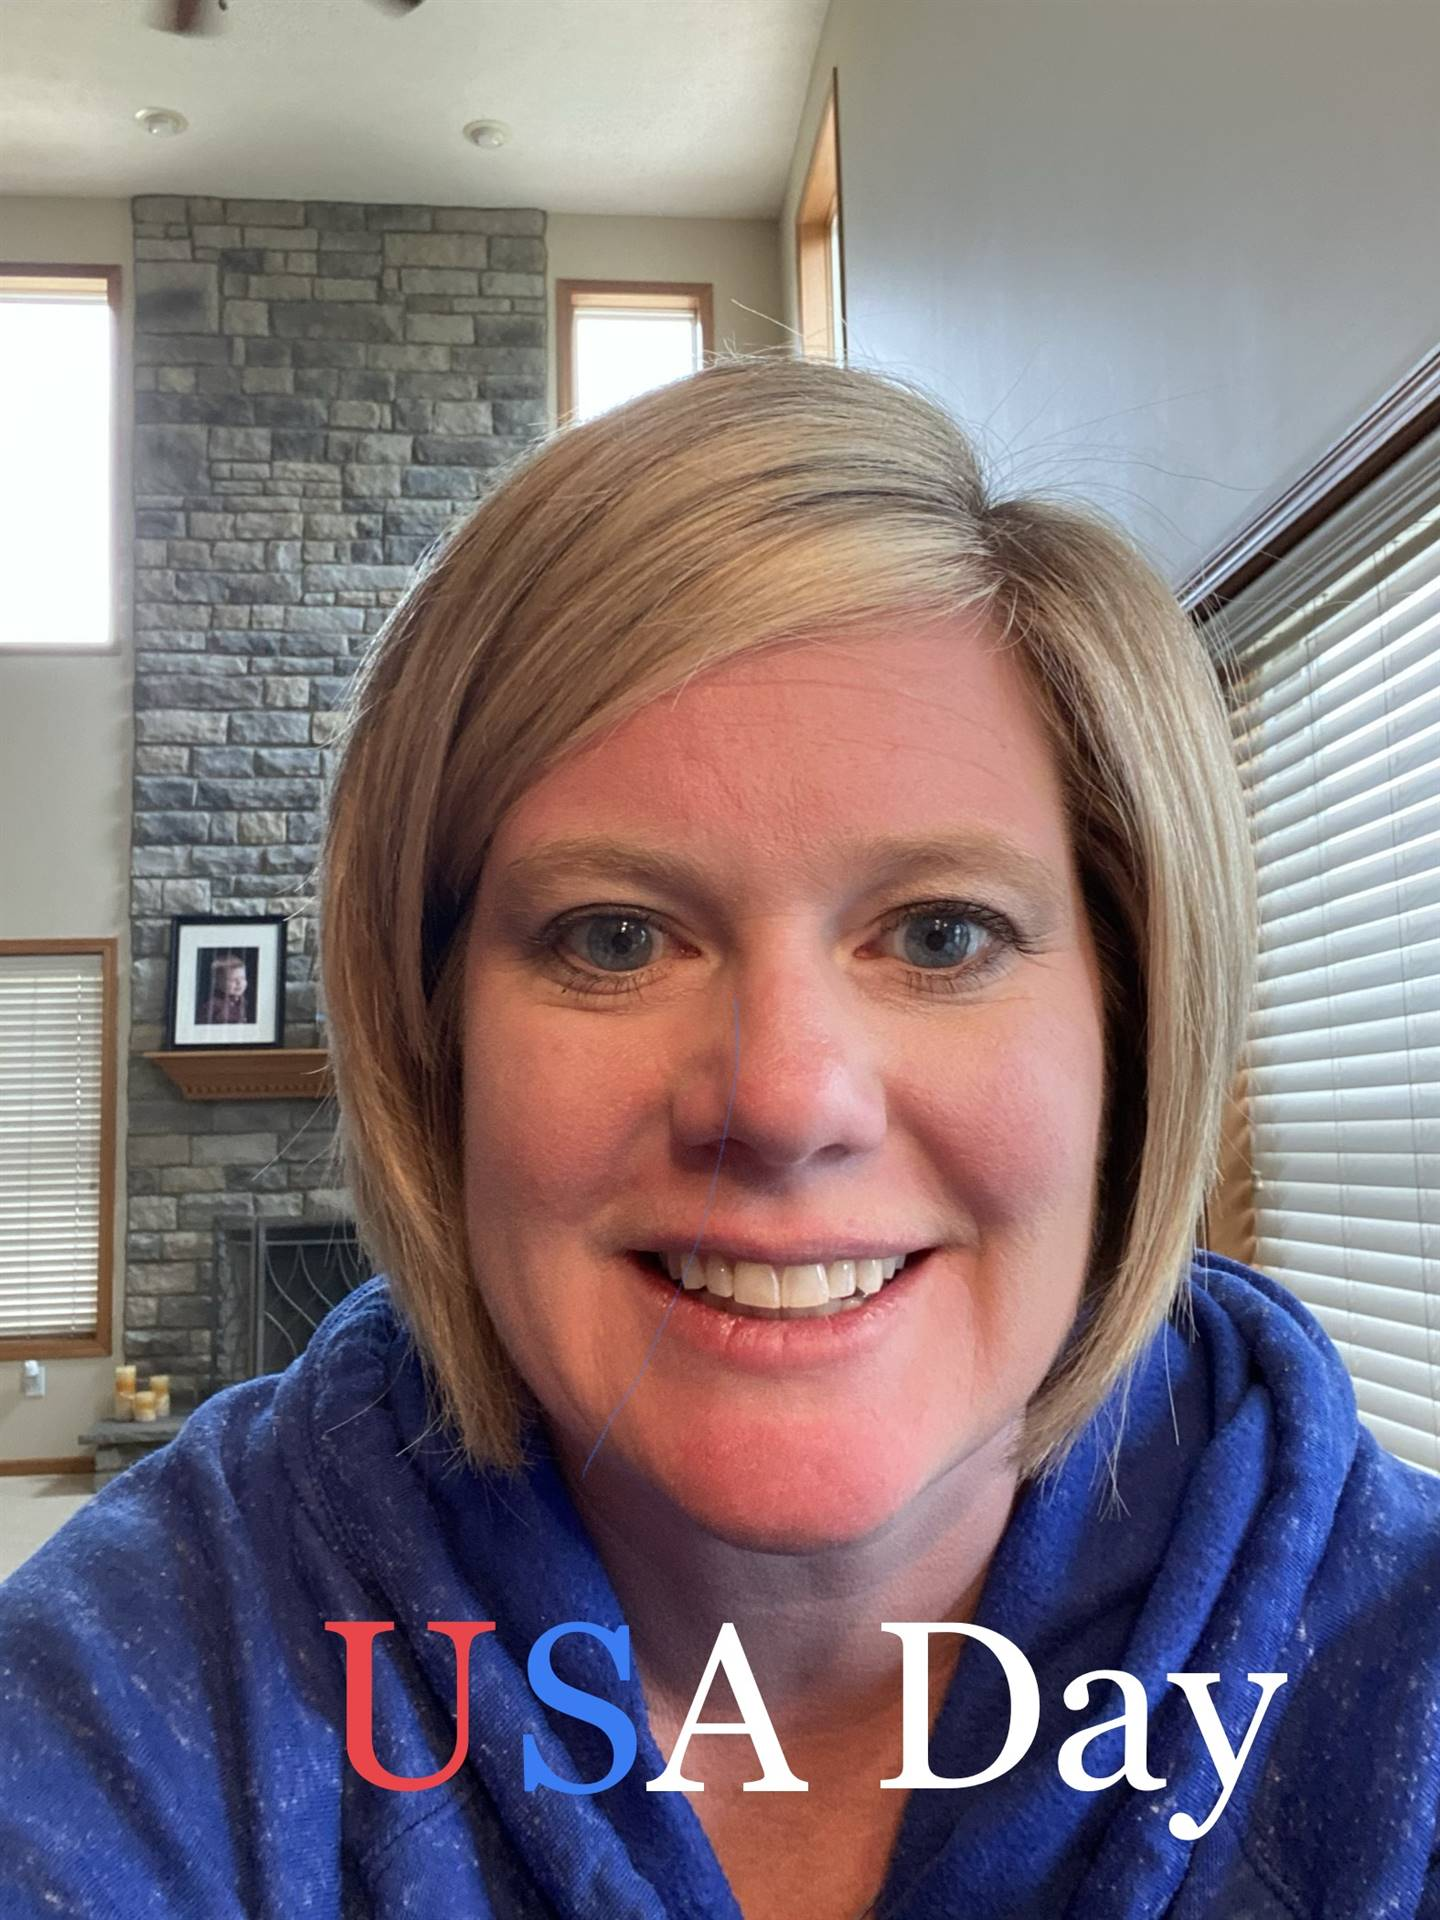 USA Day- Red, White & Blue